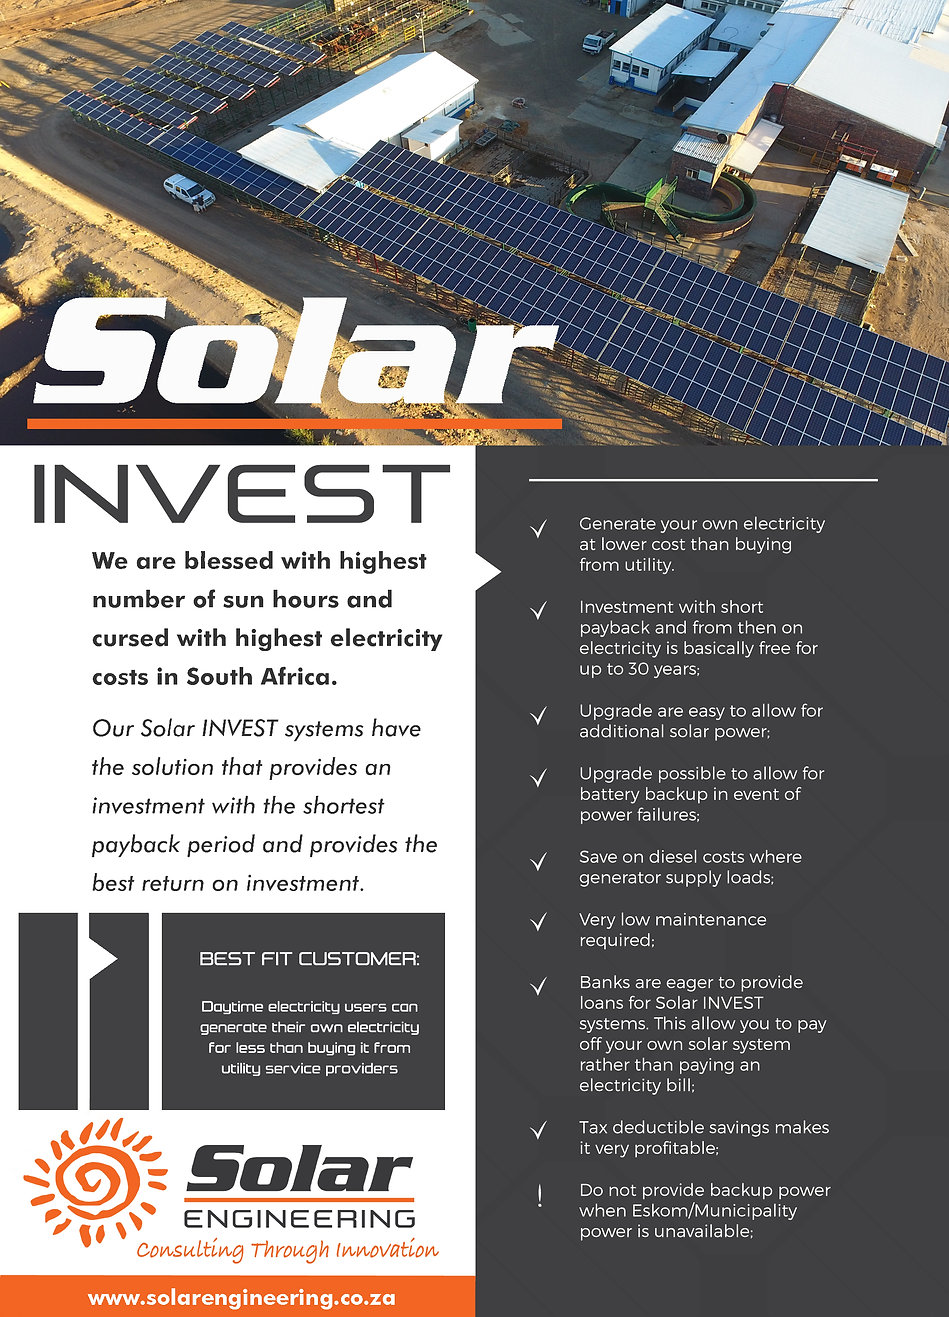 Solar as investment